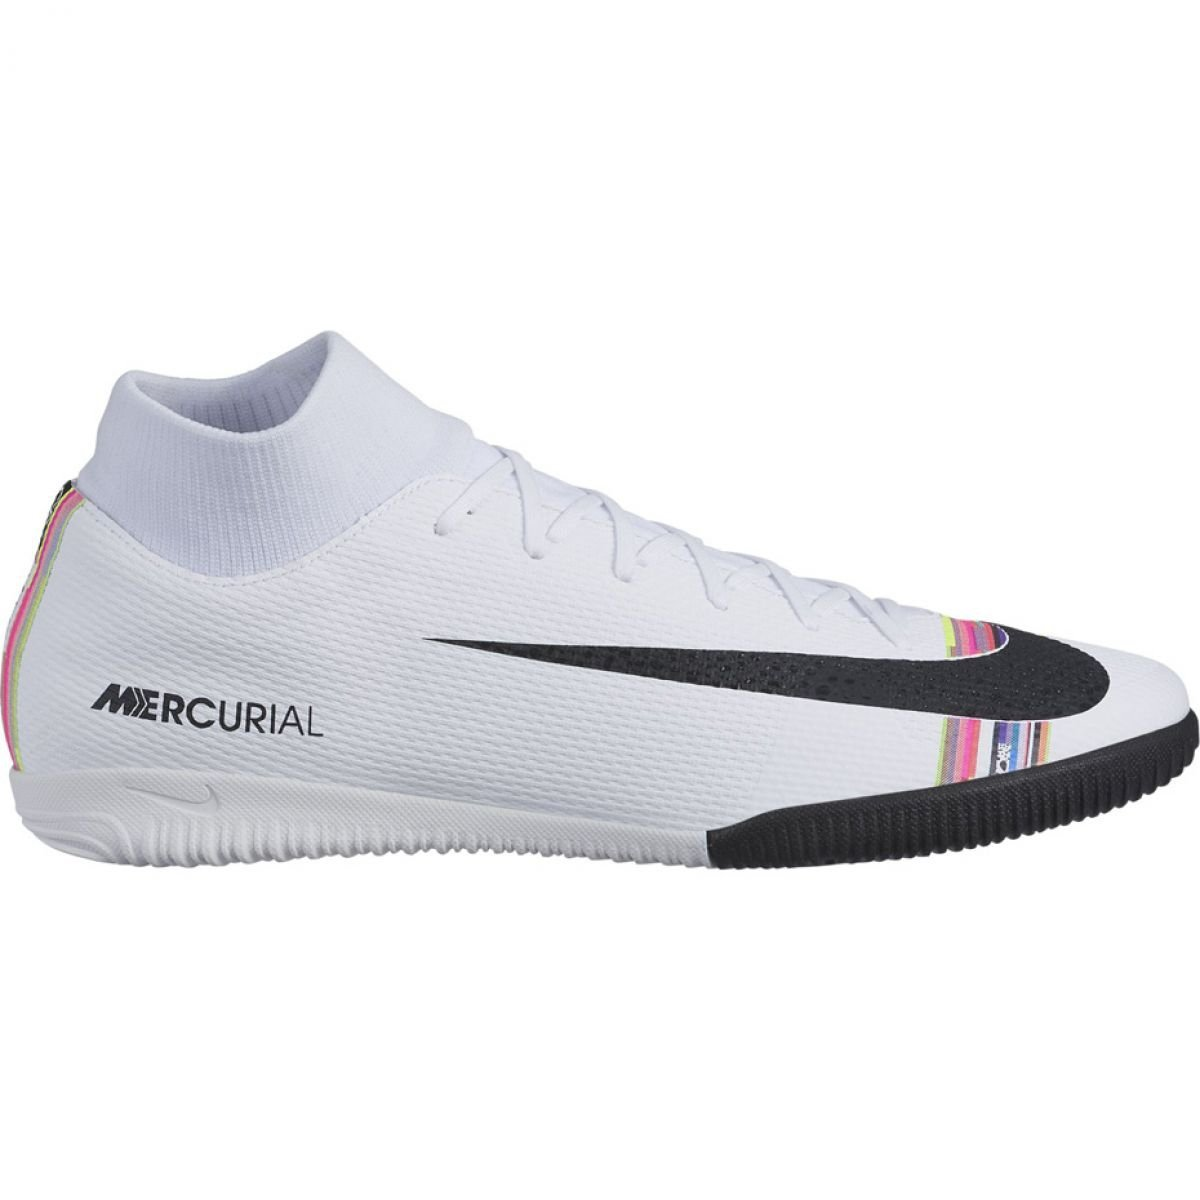 quality design the best attitude first rate Hallenschuhe Nike Mercurial Superfly X 6 Academy Ic AJ3567-109 weiß weiß